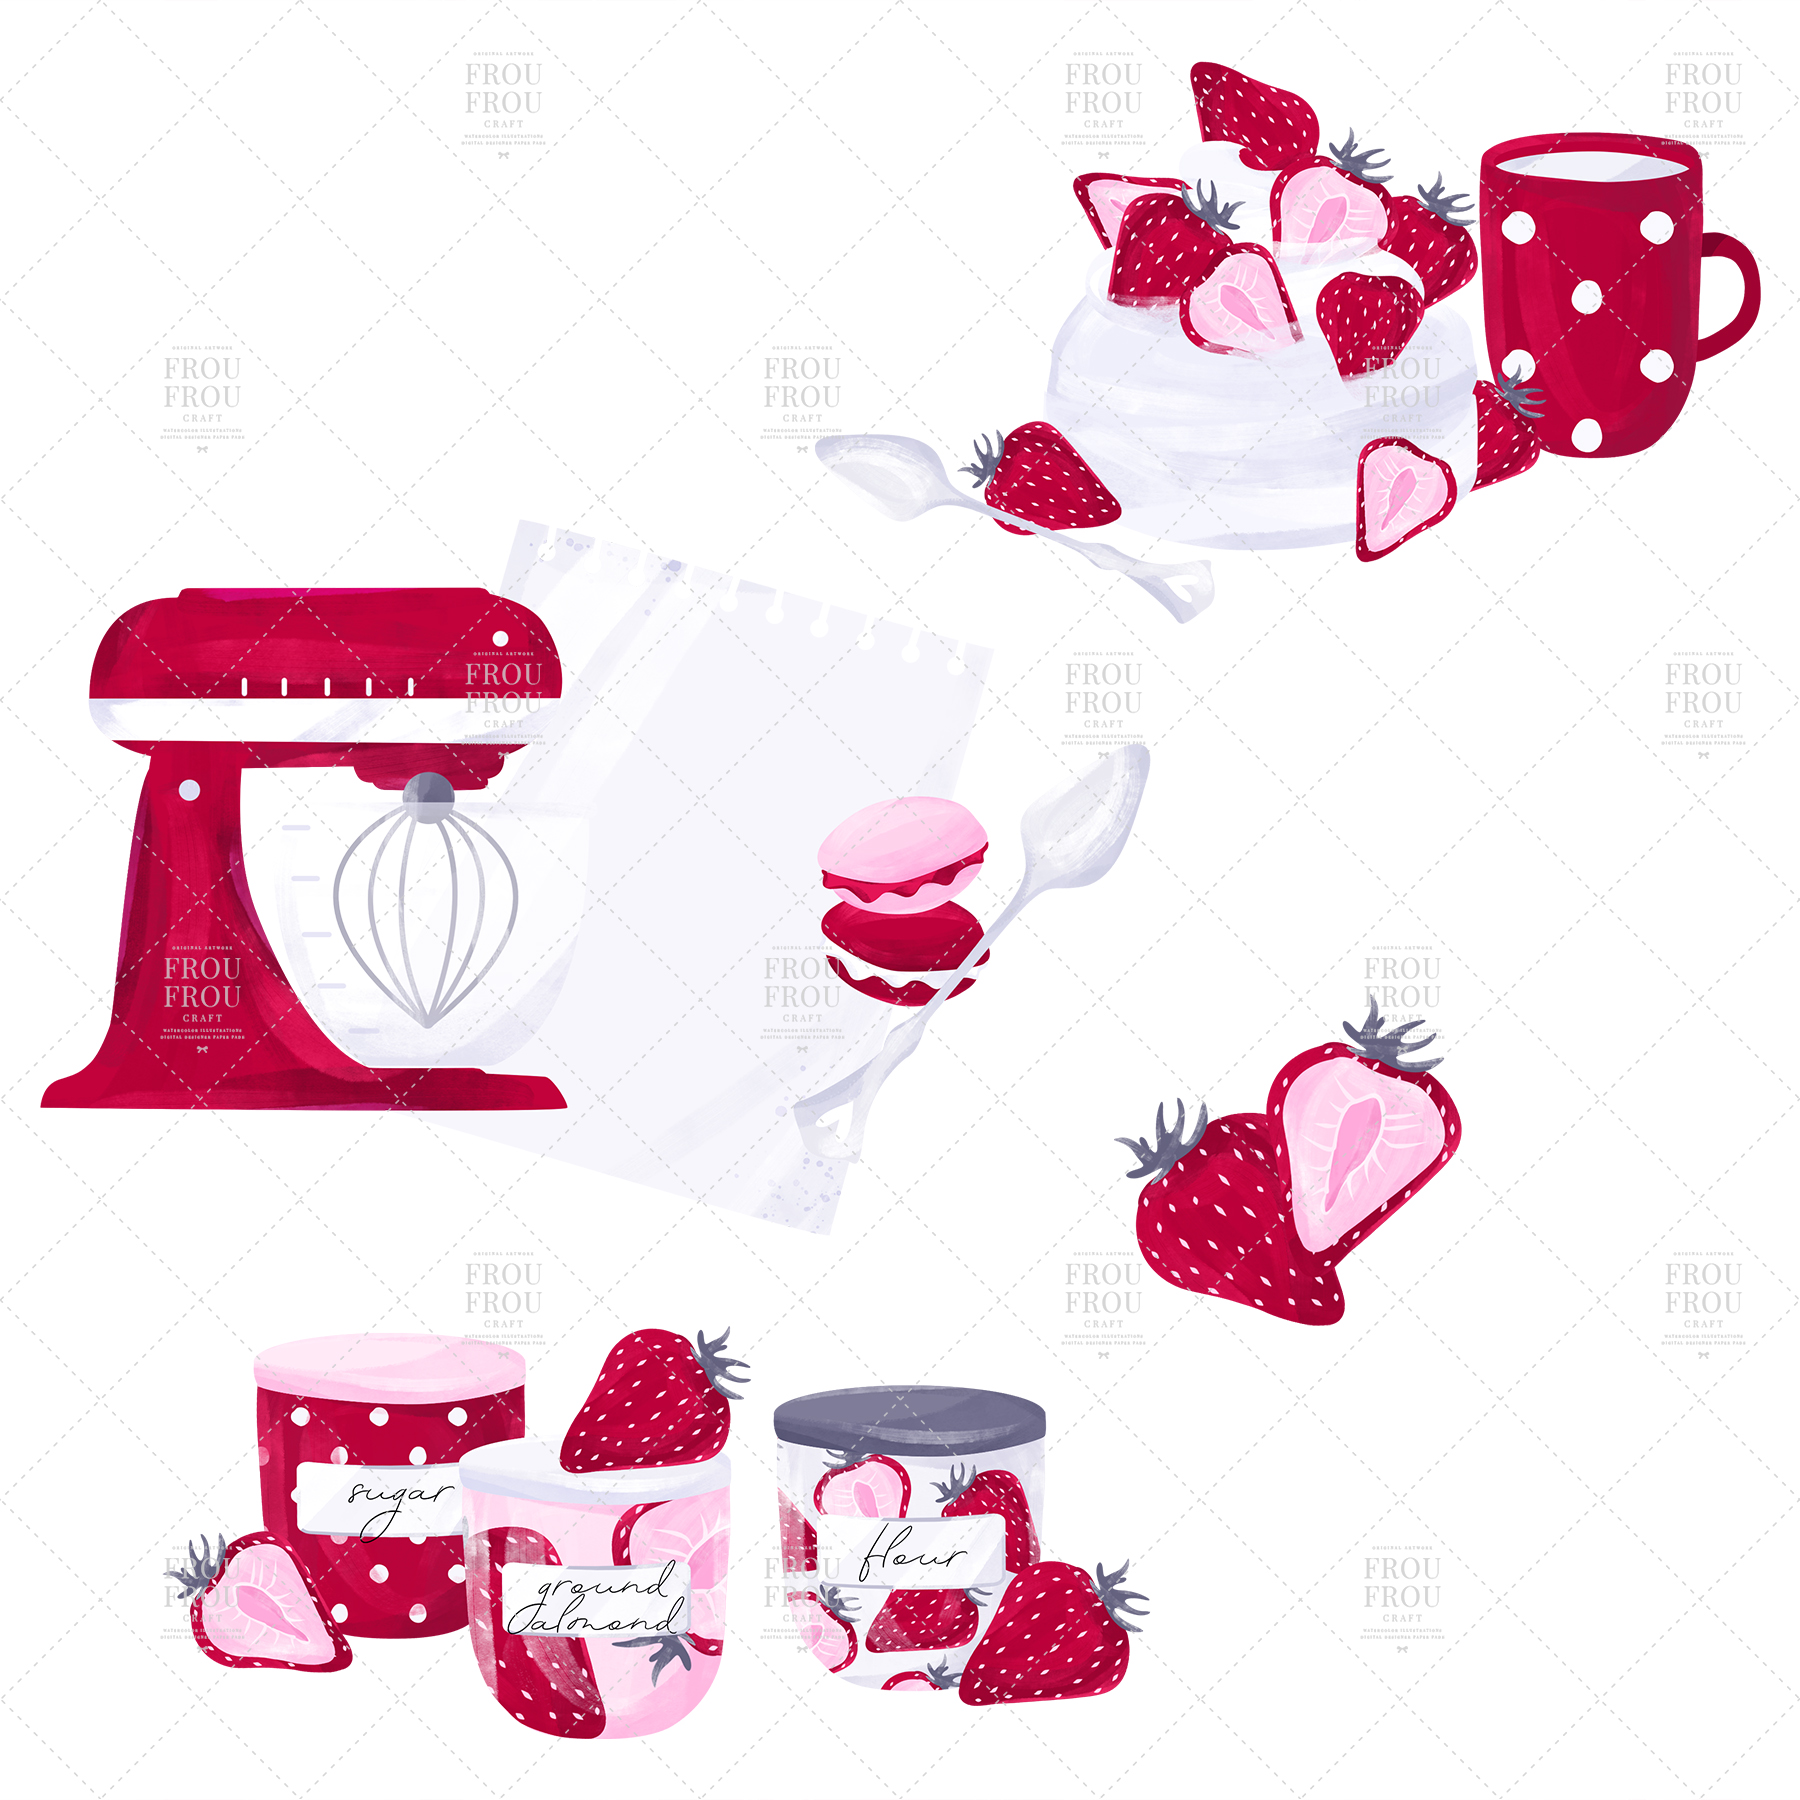 Cooking Bakery Strawberry Kitchen Clip Art example image 7